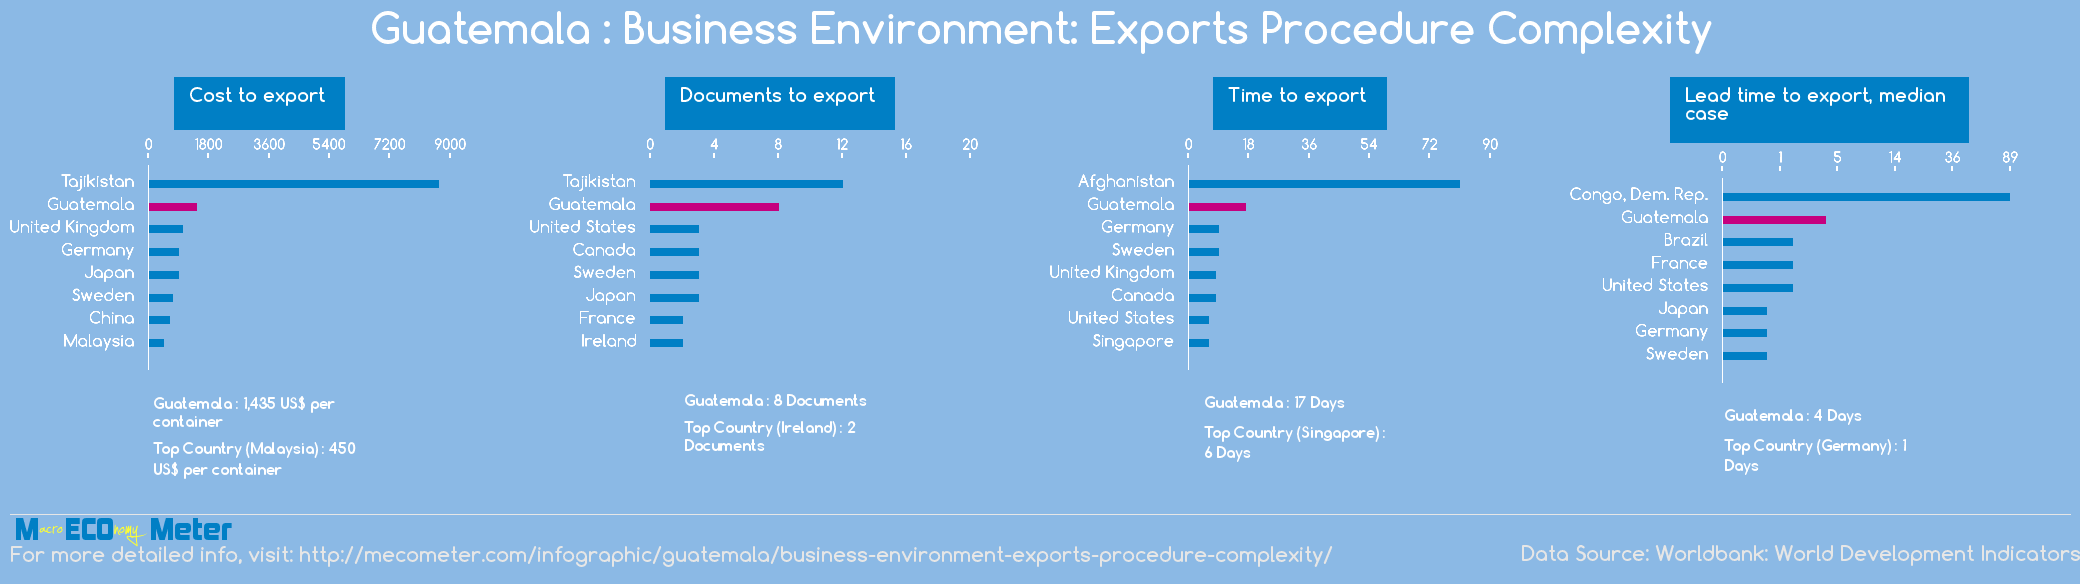 Guatemala : Business Environment: Exports Procedure Complexity